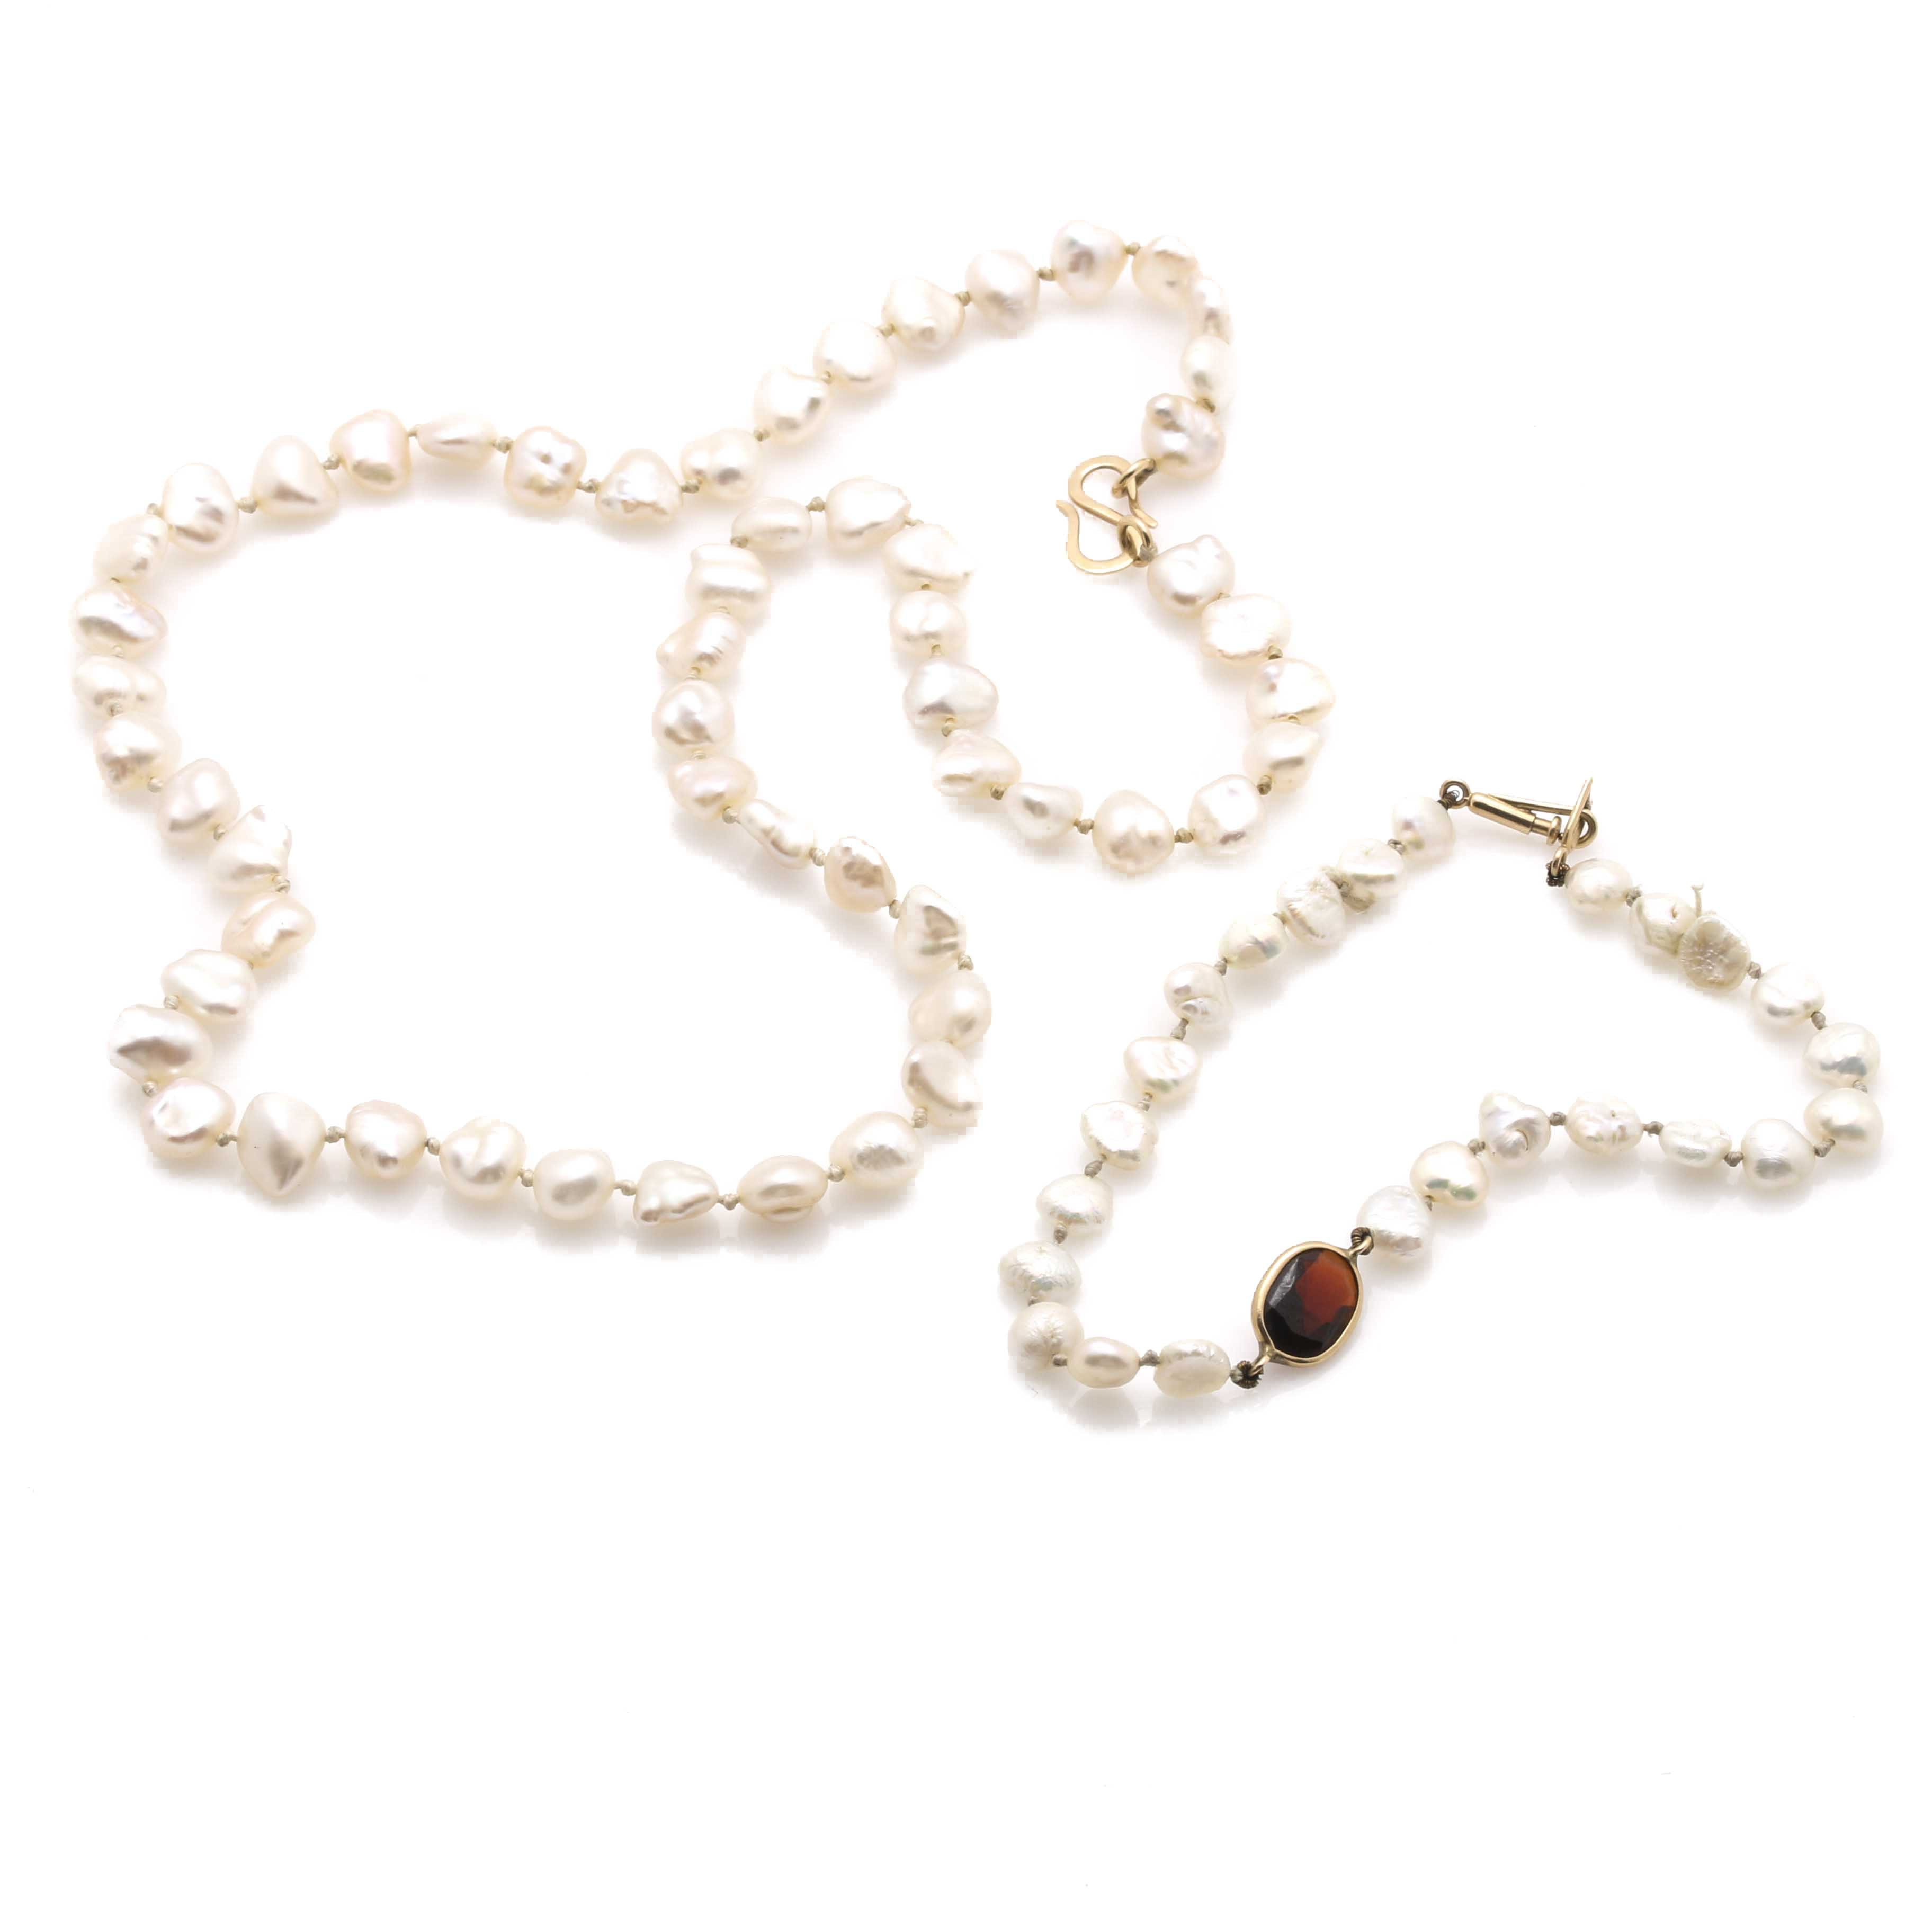 Freshwater Pearl Necklace and Bracelet With Garnet Accent and 14K Yellow Gold Findings